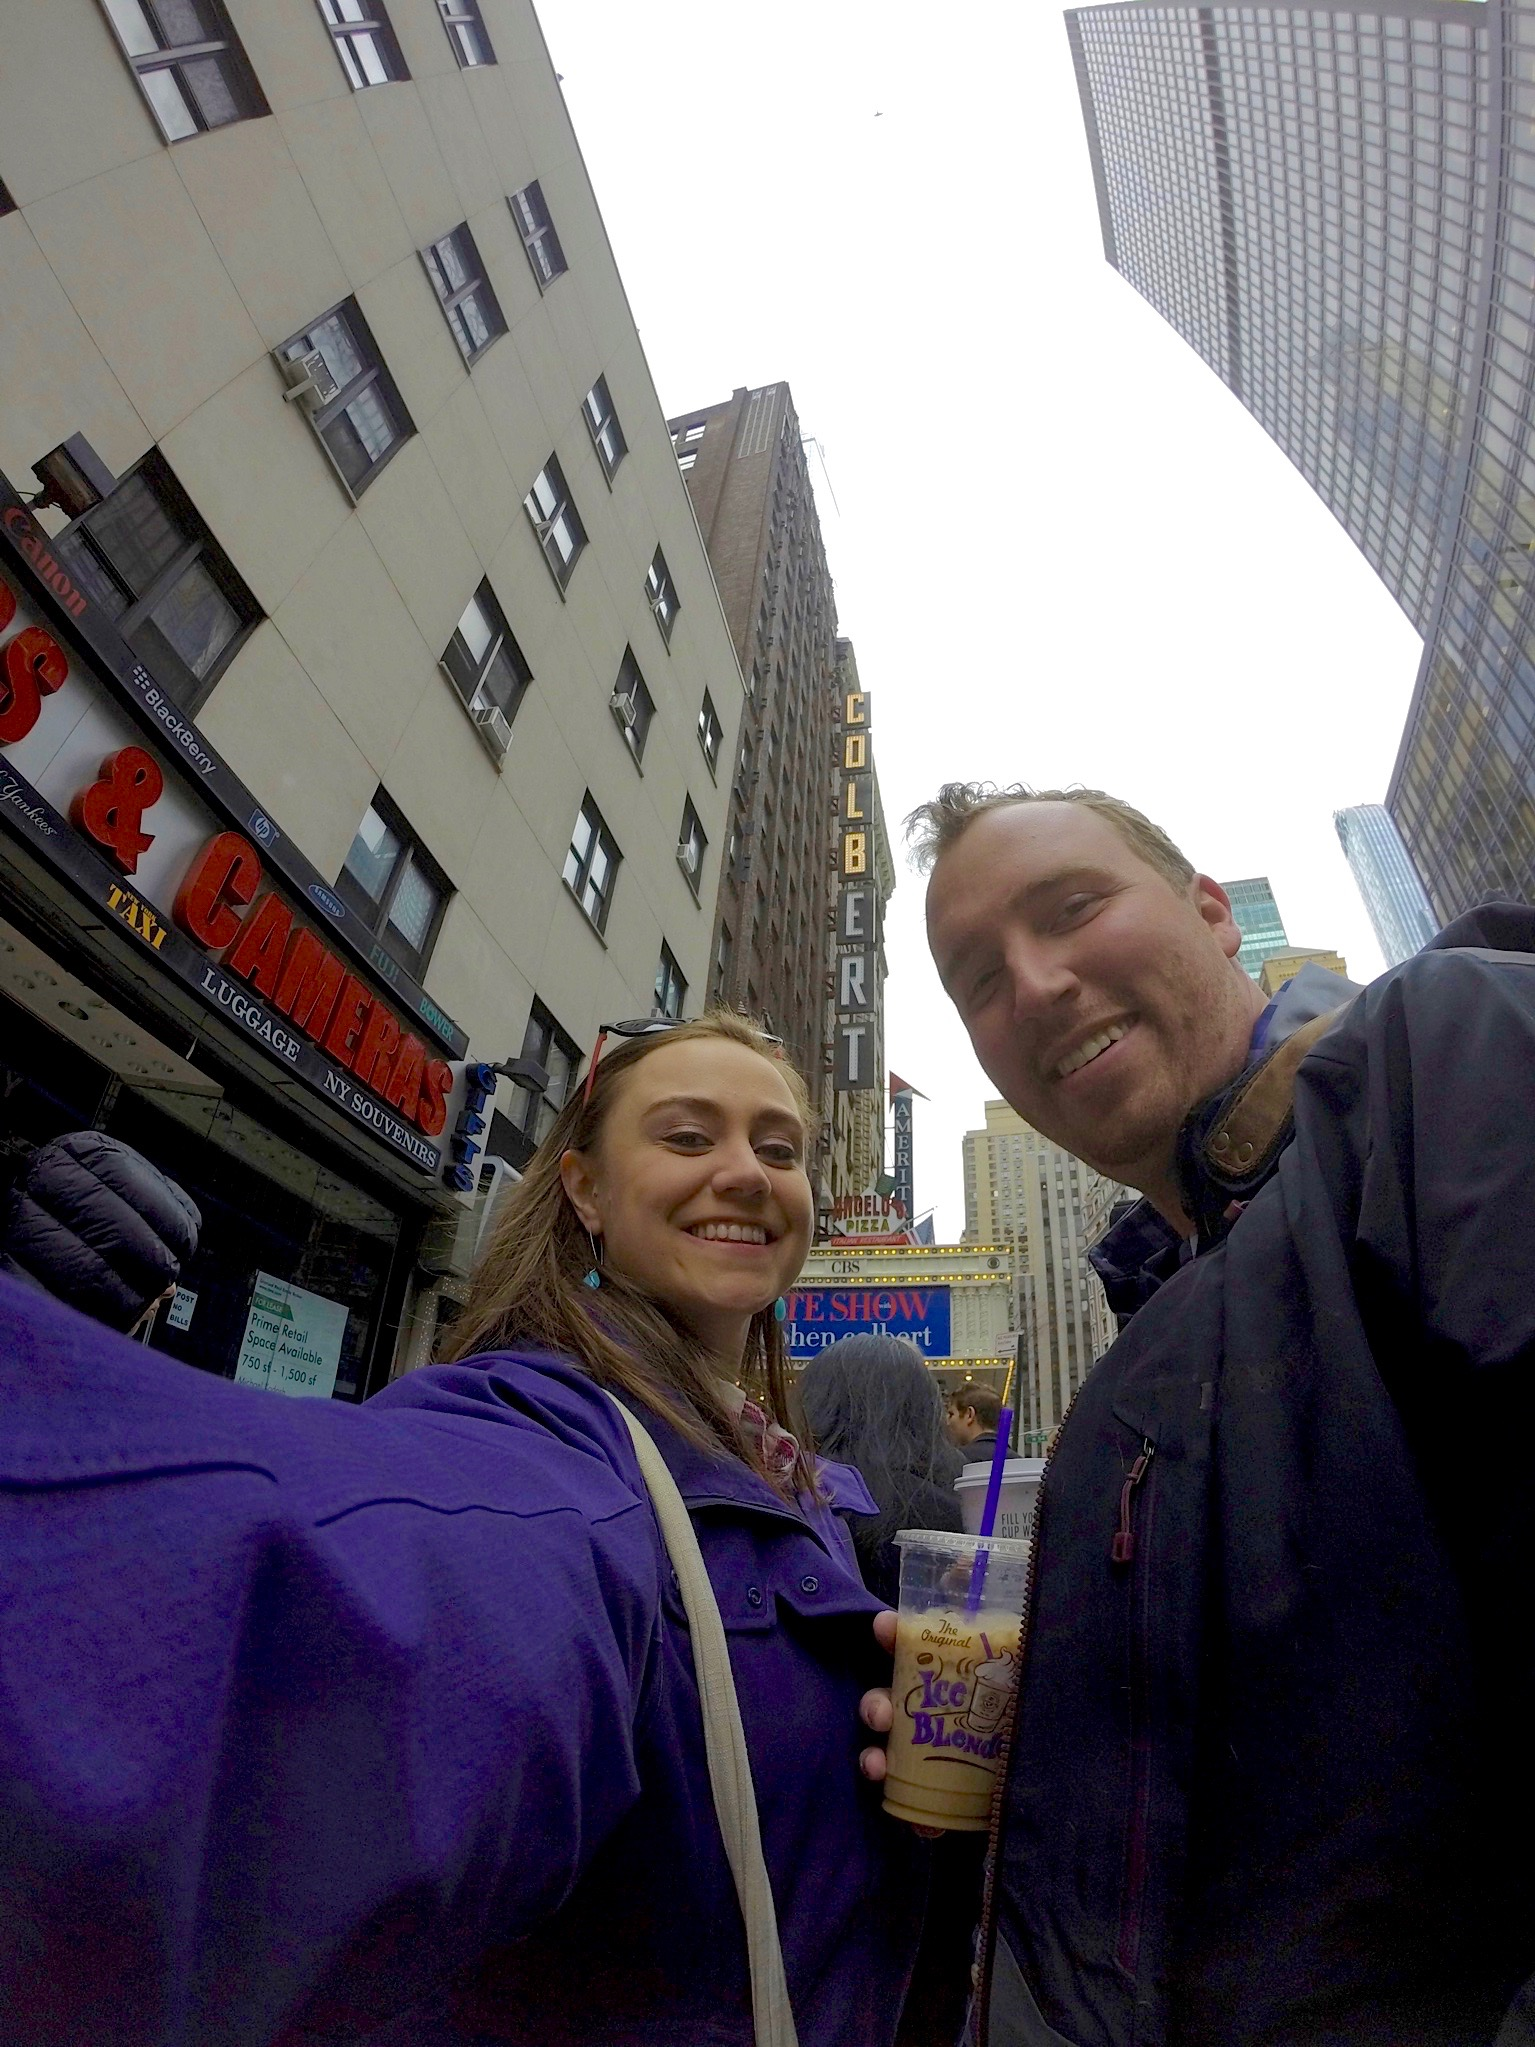 Outside the Ed Sullivan Theater - taken with our GoPro - which I love for these fun wide-angle shots, and not knowing what you've gotten until you upload it to your computer!